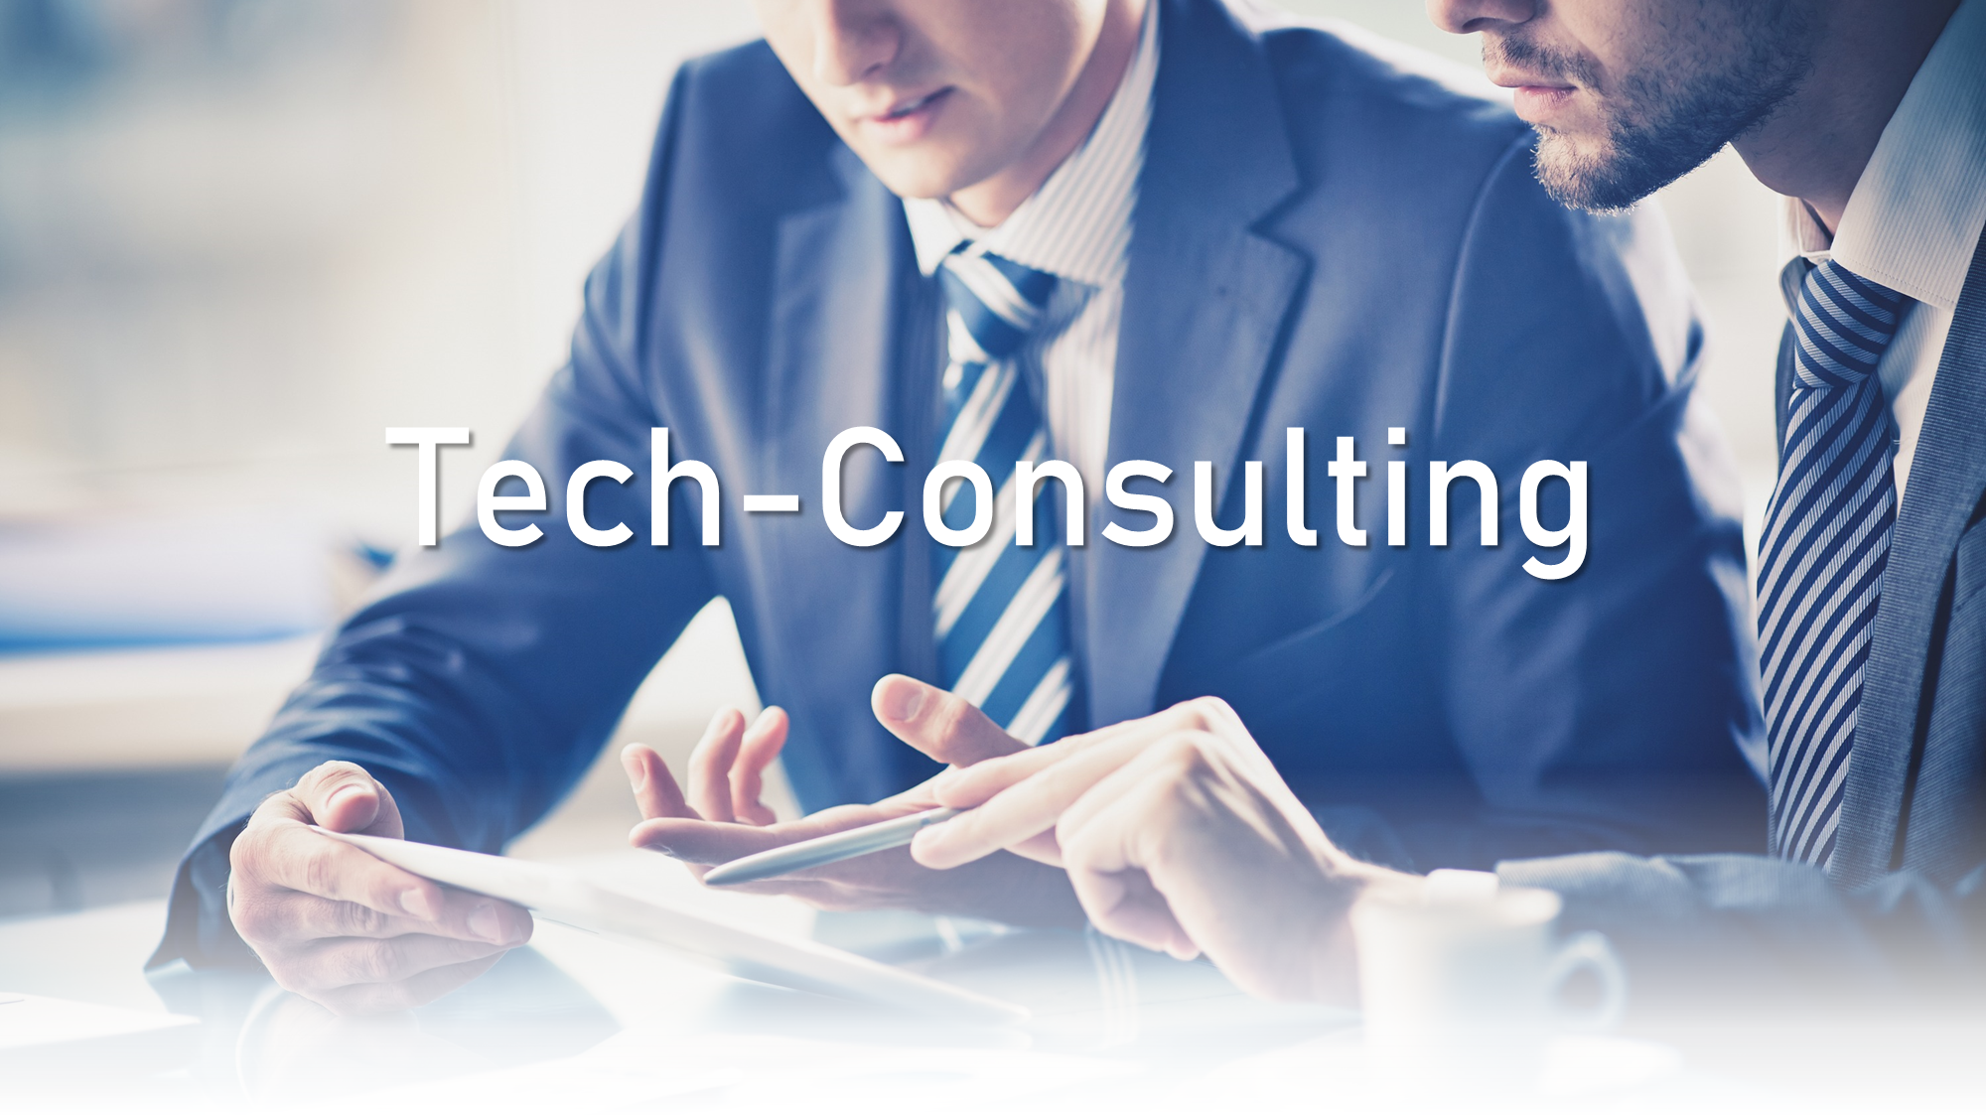 techconsulting.png